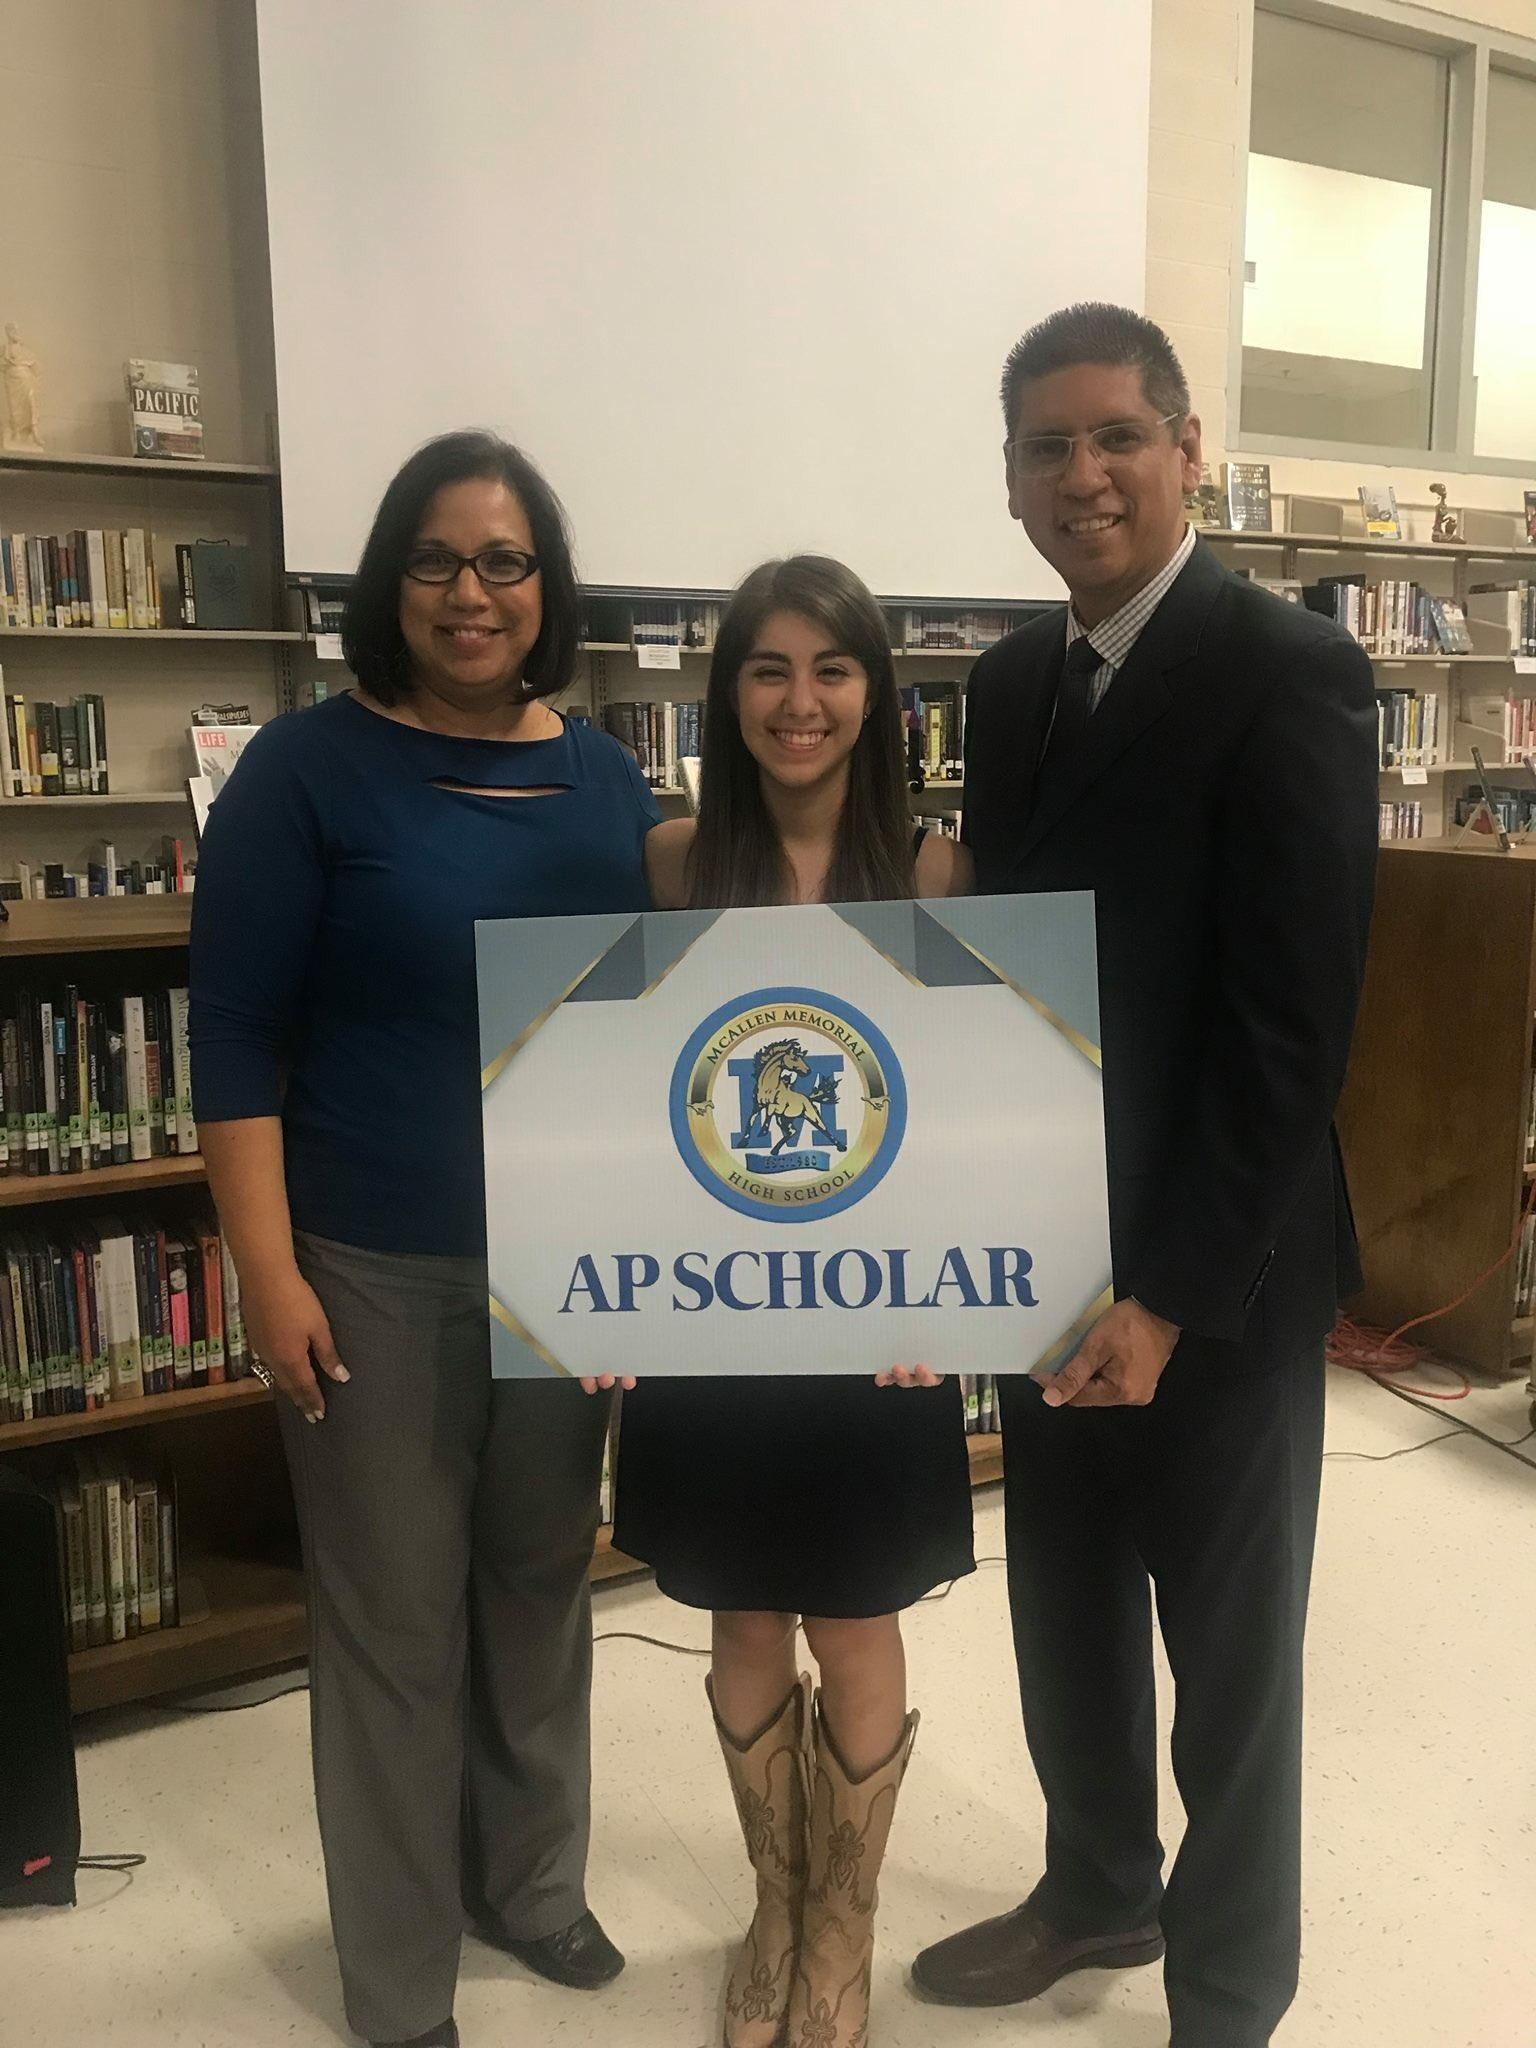 student with administrators holding AP Scholar yard sign